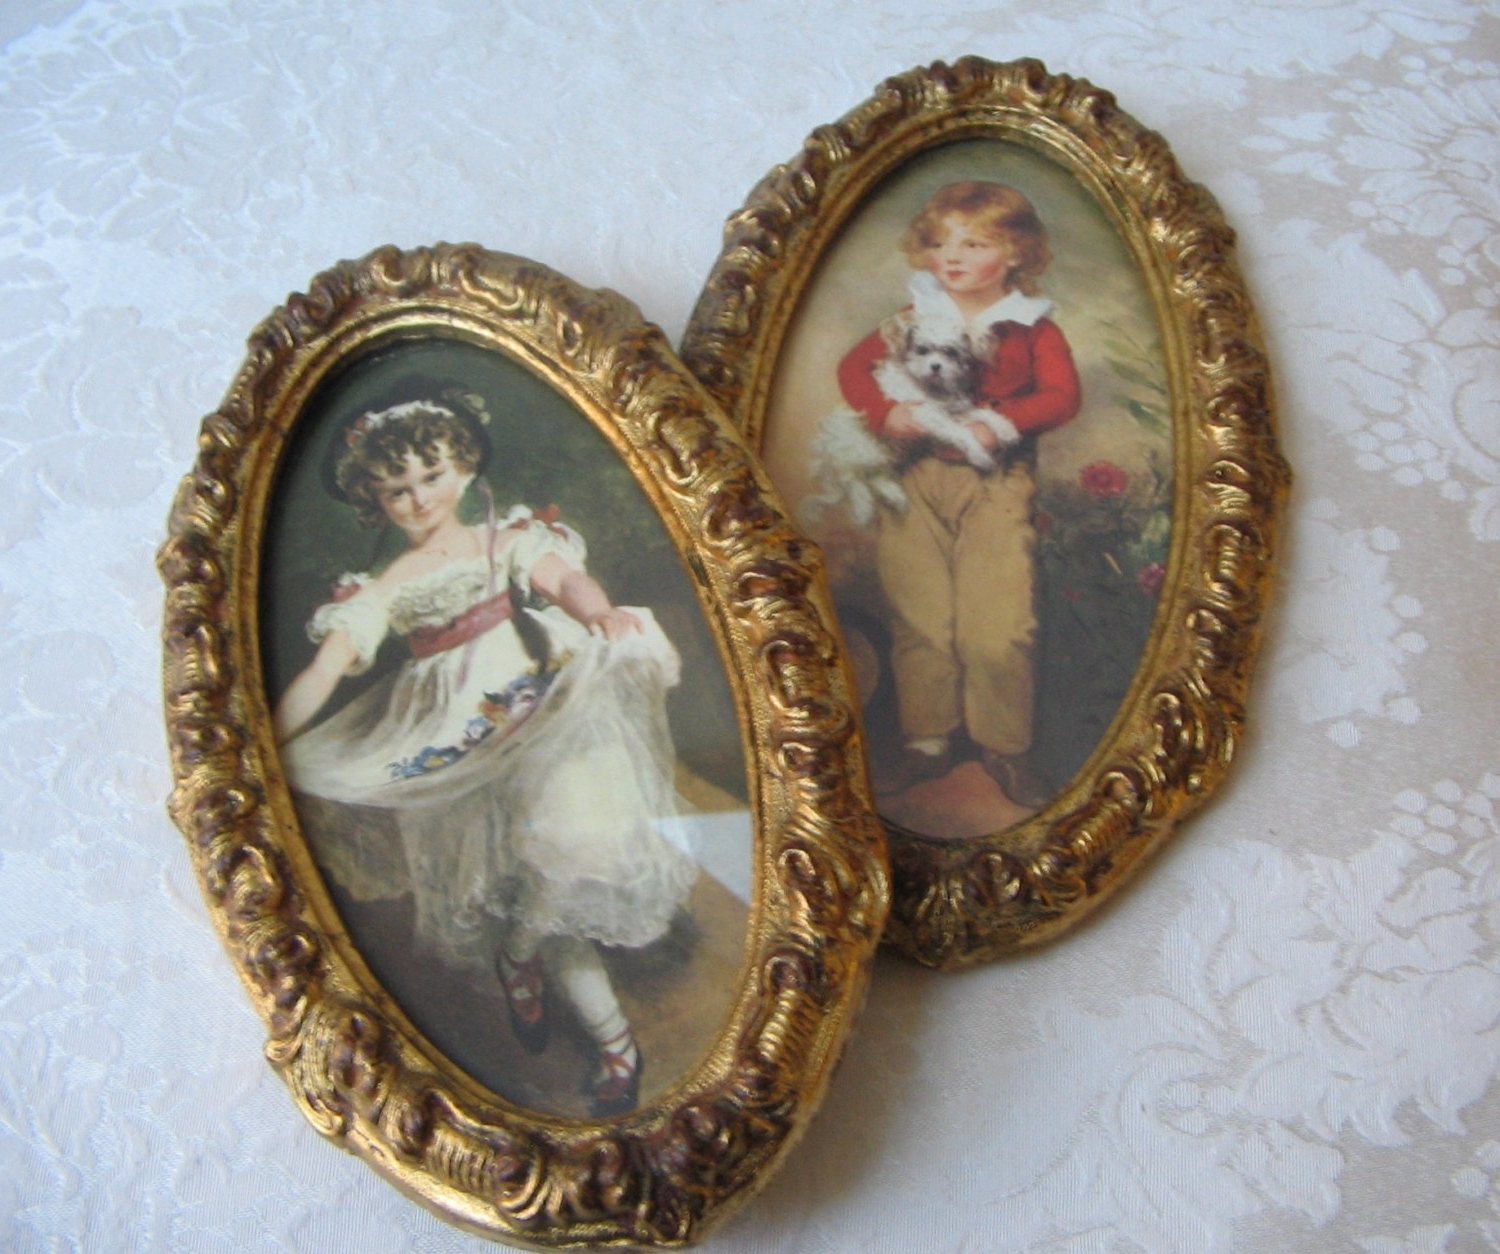 Italian Wall Art Prints Inside Current Vintage Florentine Prints In Ornate Gold Italian Frames Of Boy (View 5 of 15)